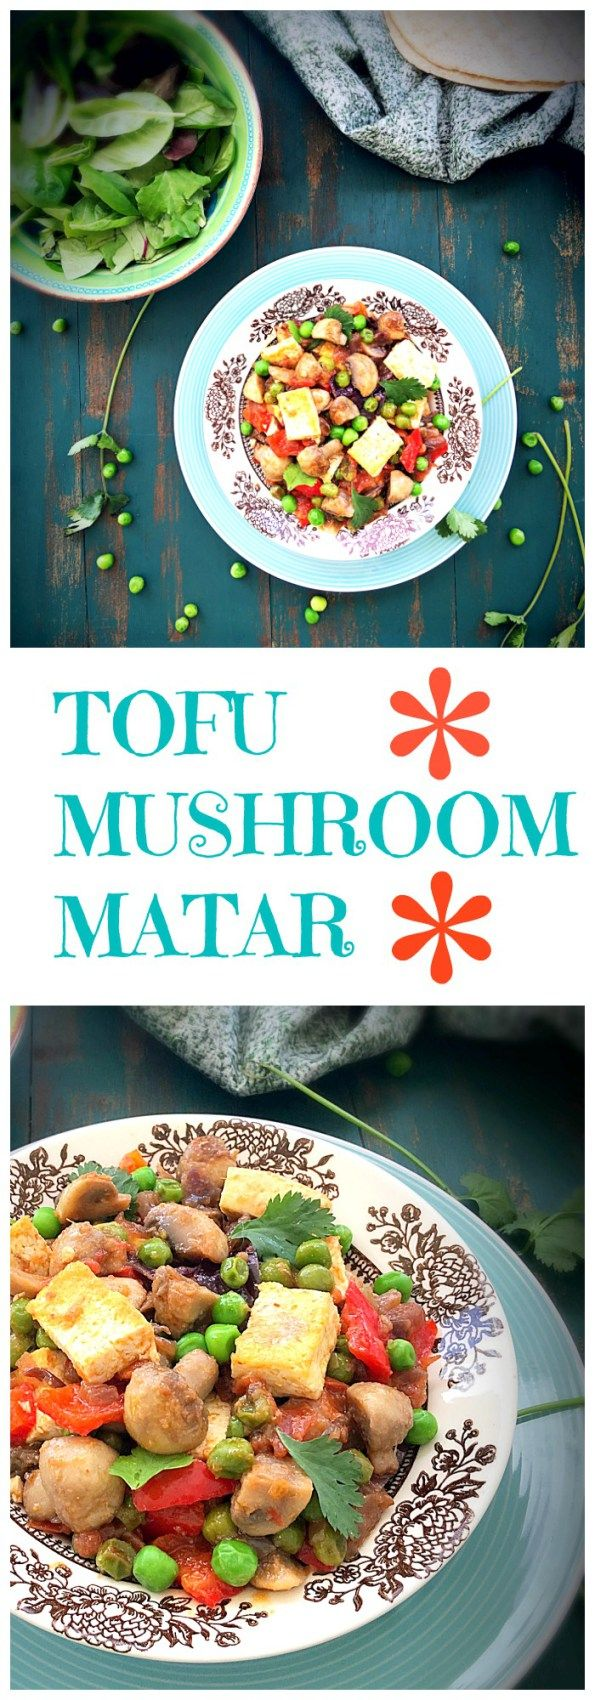 Tofu Mushroom Matar, Tofu Recipes, Tofu Indian Recipes Mushroom Matar with Tofu